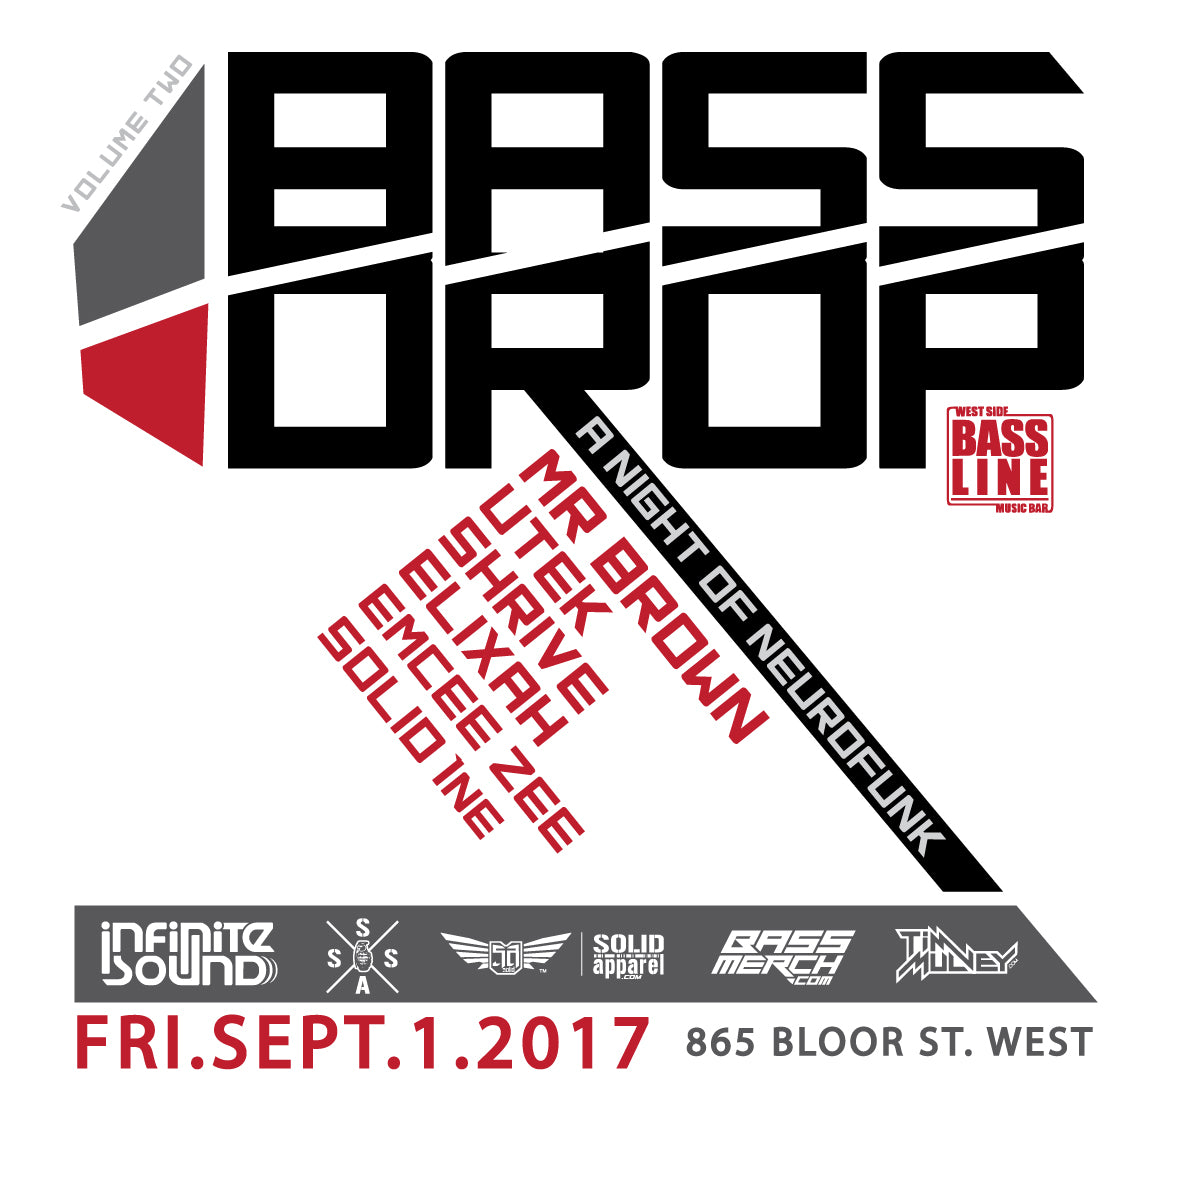 Bass Drop v.2 // Presented by Infinite Sound - eTicket